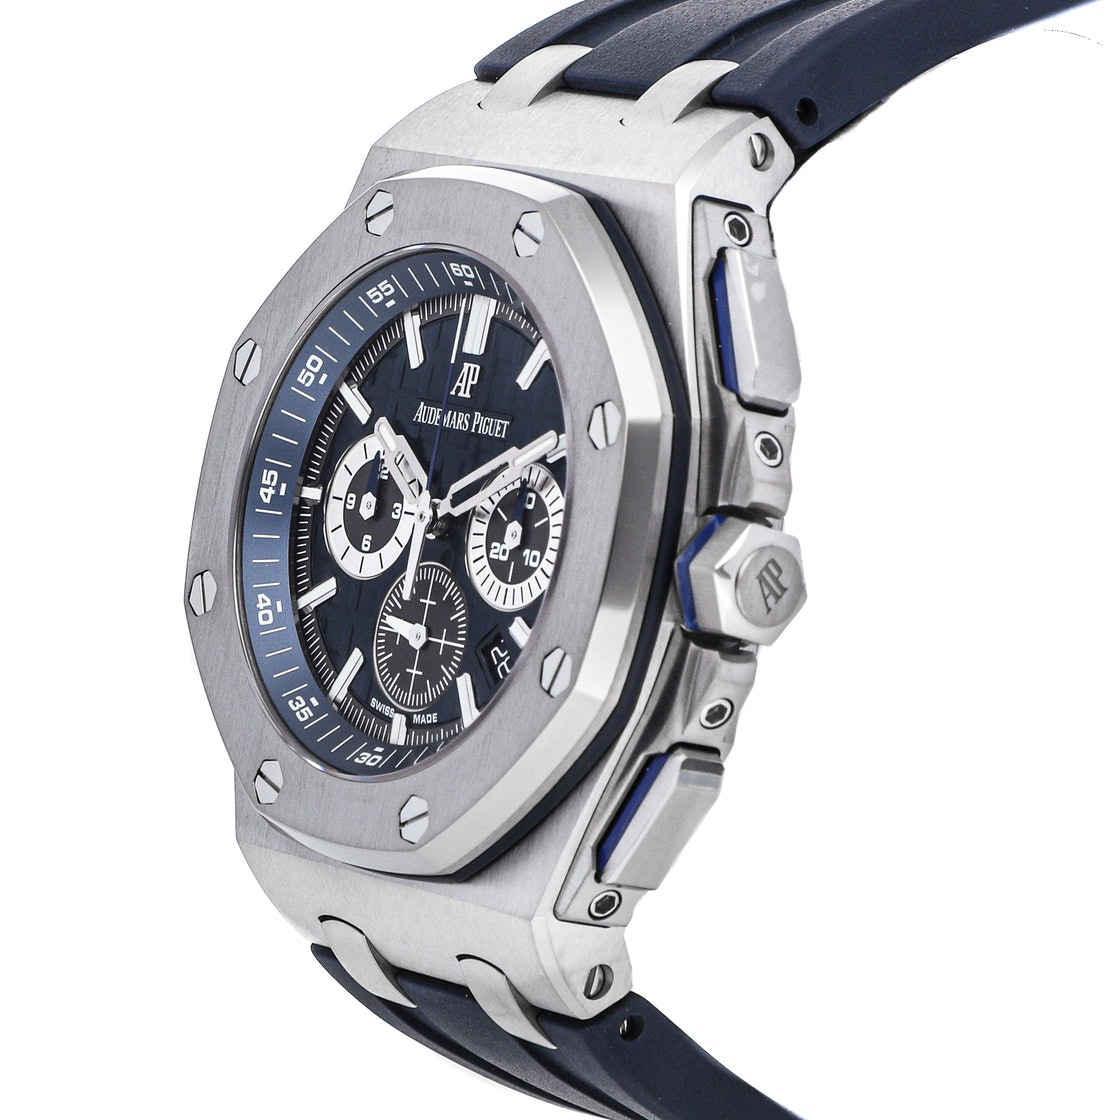 Audemars Piguet Royal Oak Offshore Chronograph 26480TI.OO.A027CA.01